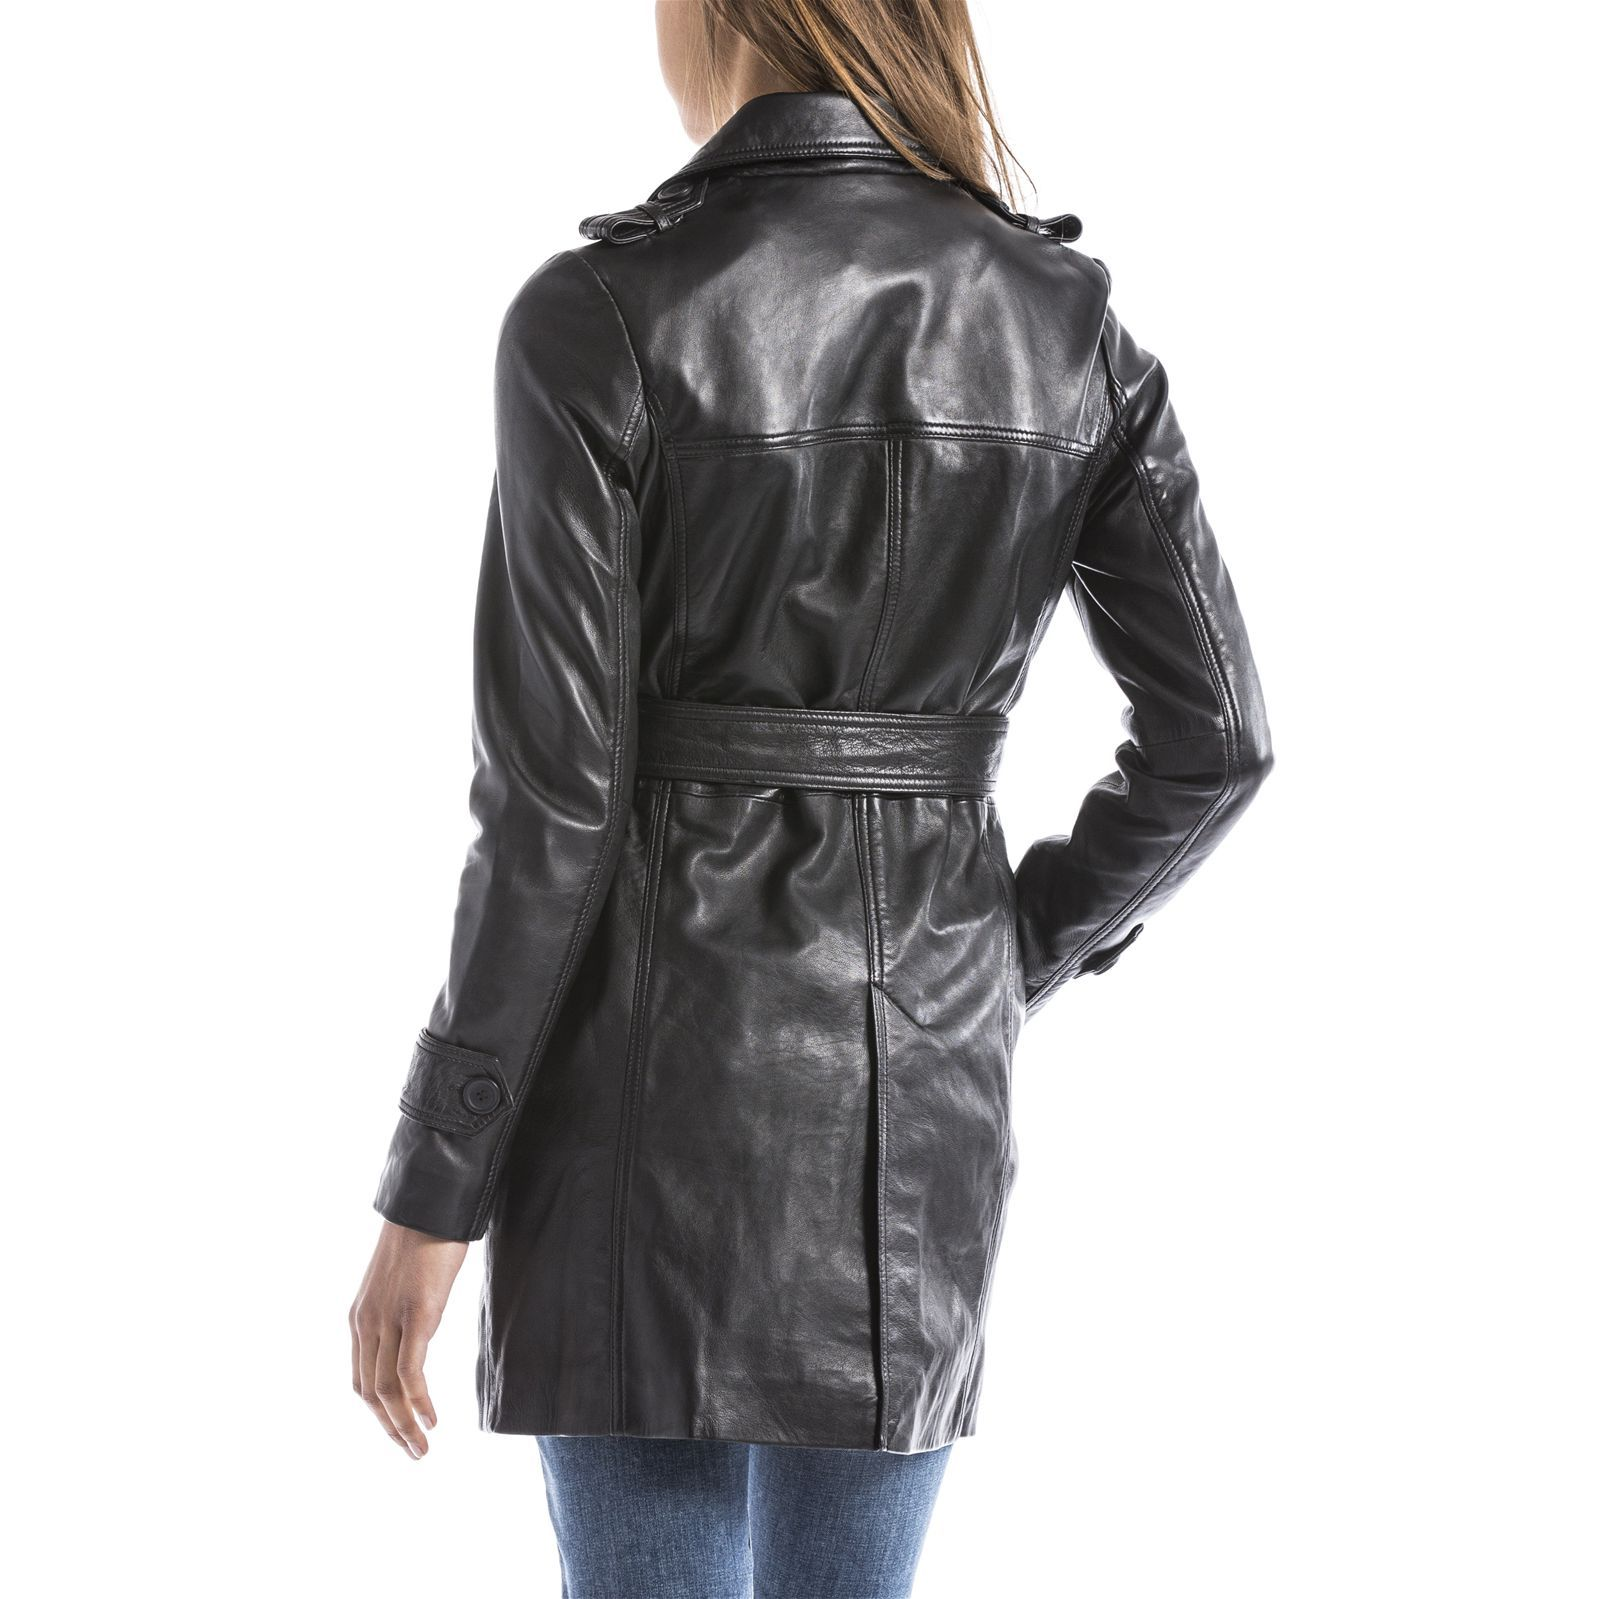 Trench Wellford Noir Noir Blue Trench Wellford Brandalley Brandalley Blue Wellford Blue qpwxan85